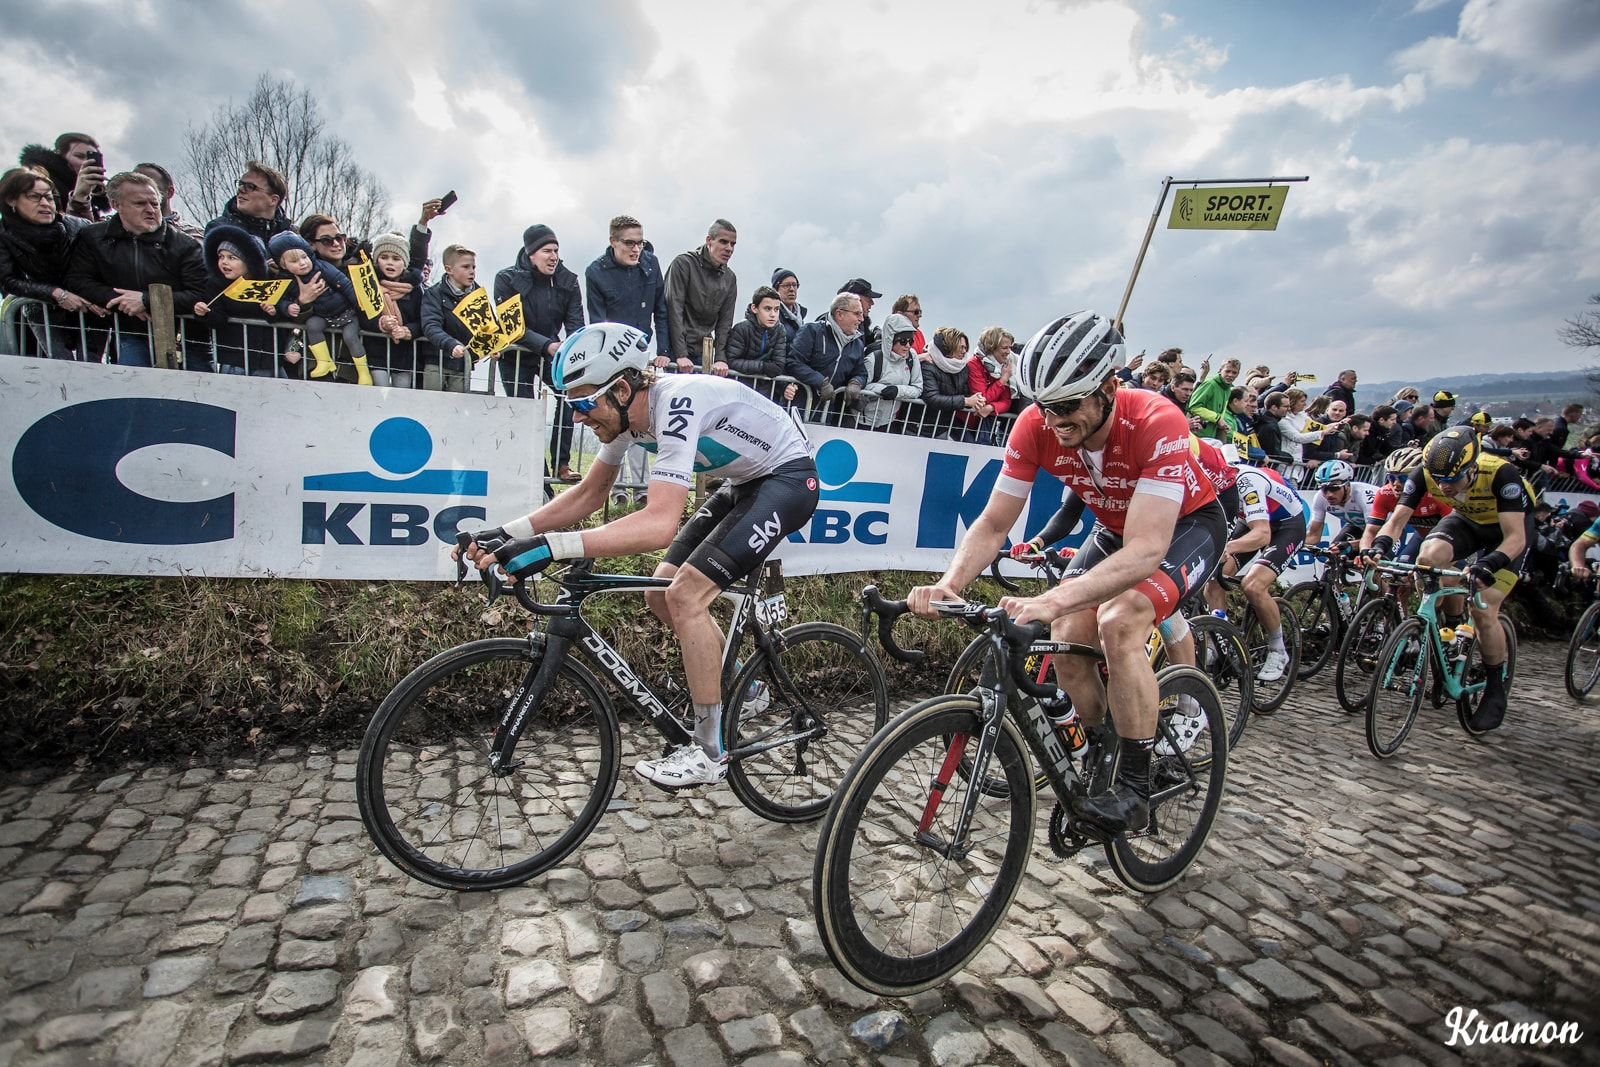 2018 Tour of Flanders